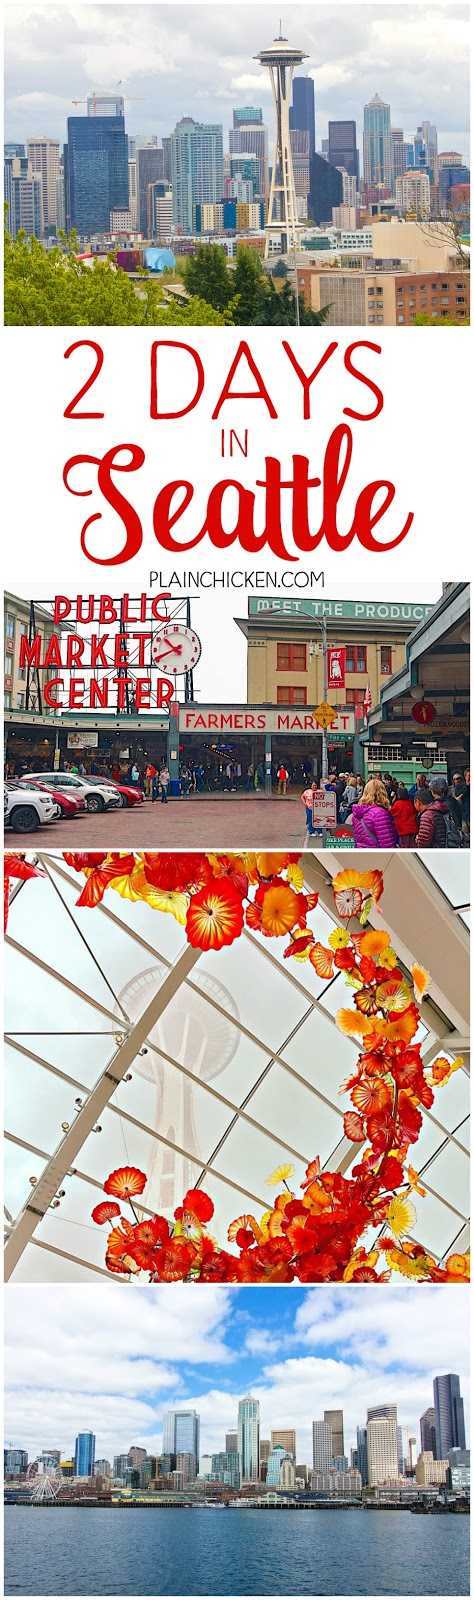 2 Days in Seattle - what to do, where to eat and where to get the BEST views of the city! Pike Place Market eats, Queen Anne Hill, Space Needle, Chihuly, EMP Museum, Houseboats, Kurt Cobain's house and THE BEST steak you'll ever eat! Seattle is one of my favorite towns!